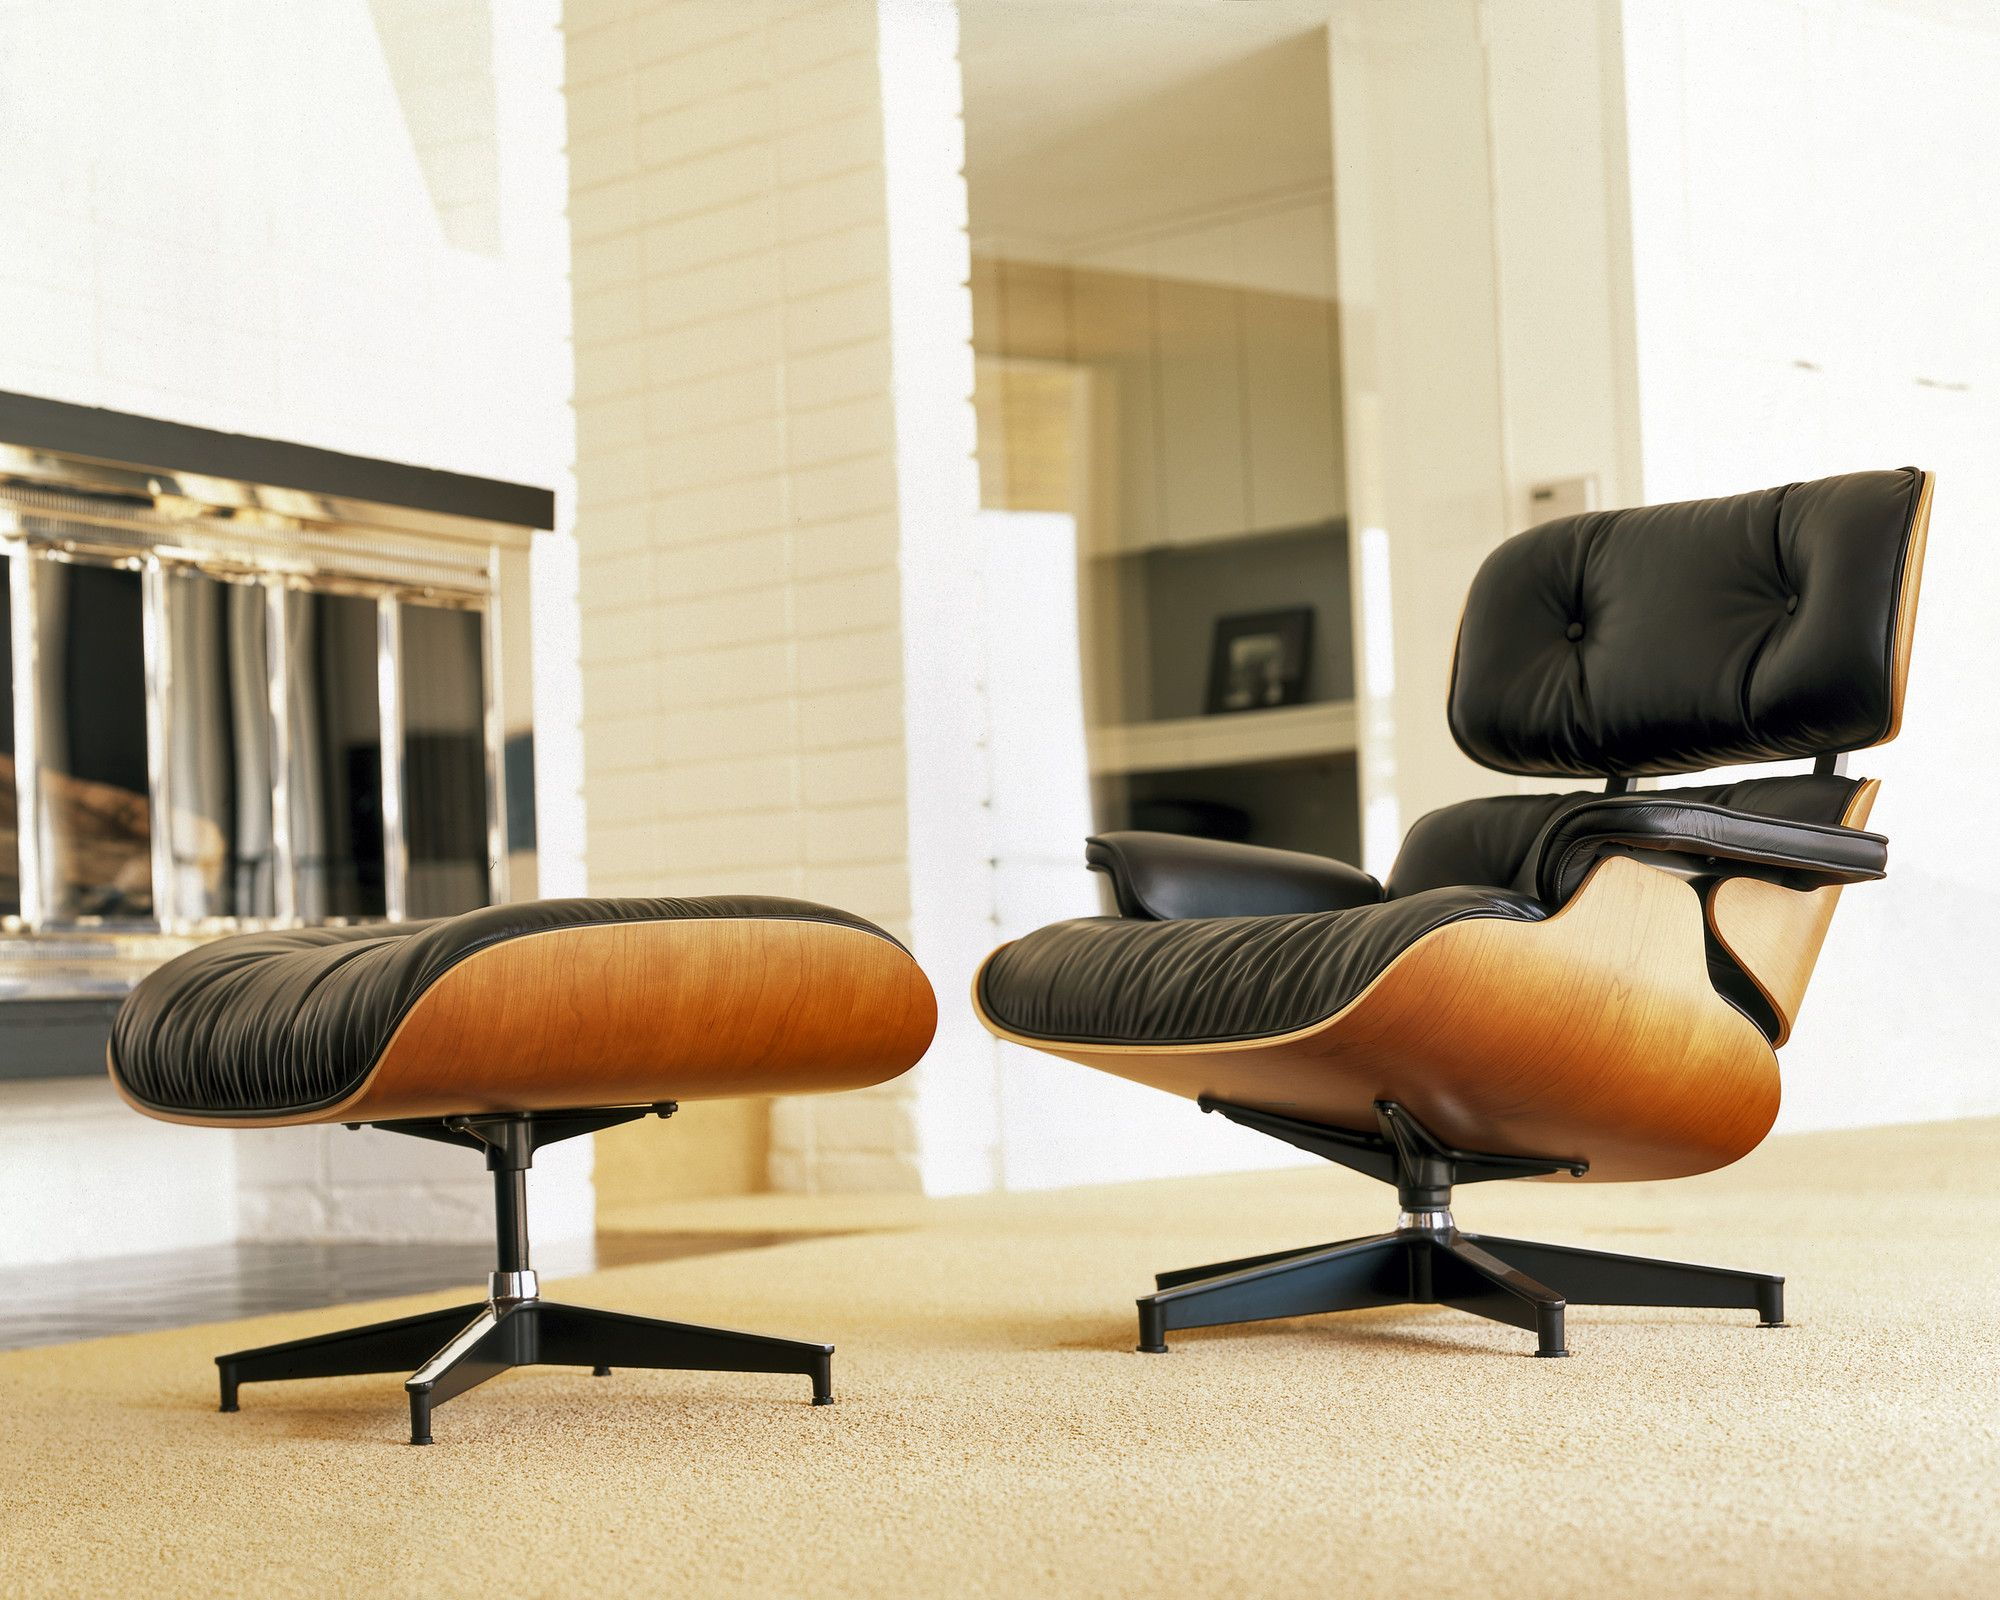 Herman miller eames lounge chair and ottoman words cannot express how much i love this chair and ottoman